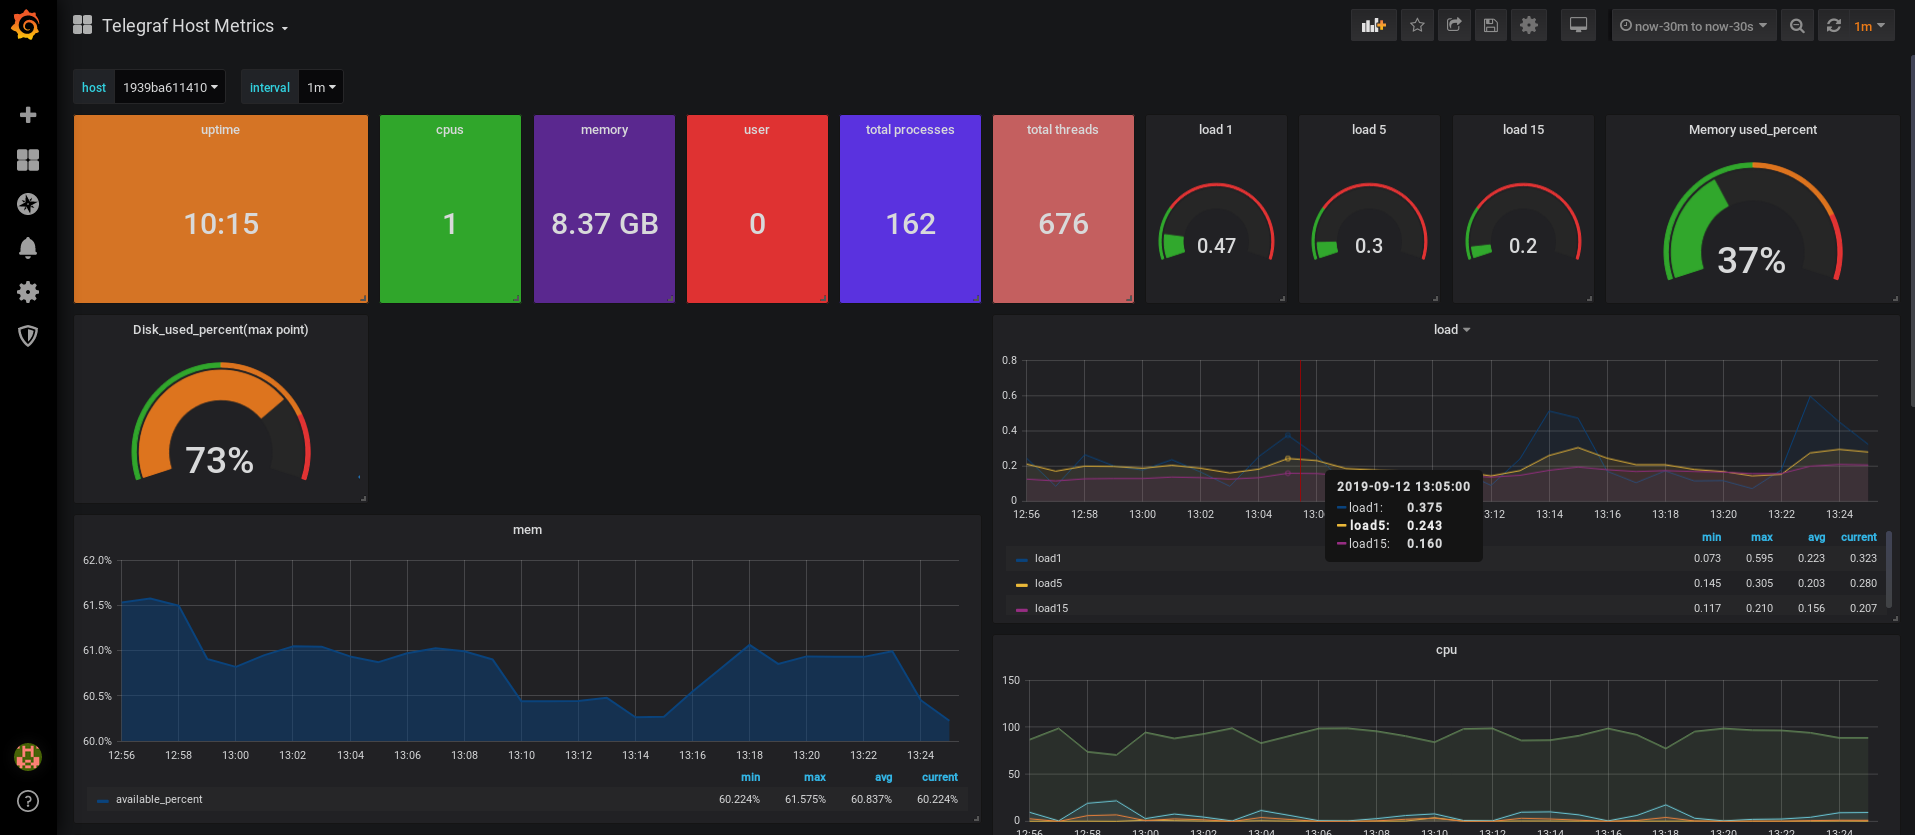 Final dashboard in Grafana